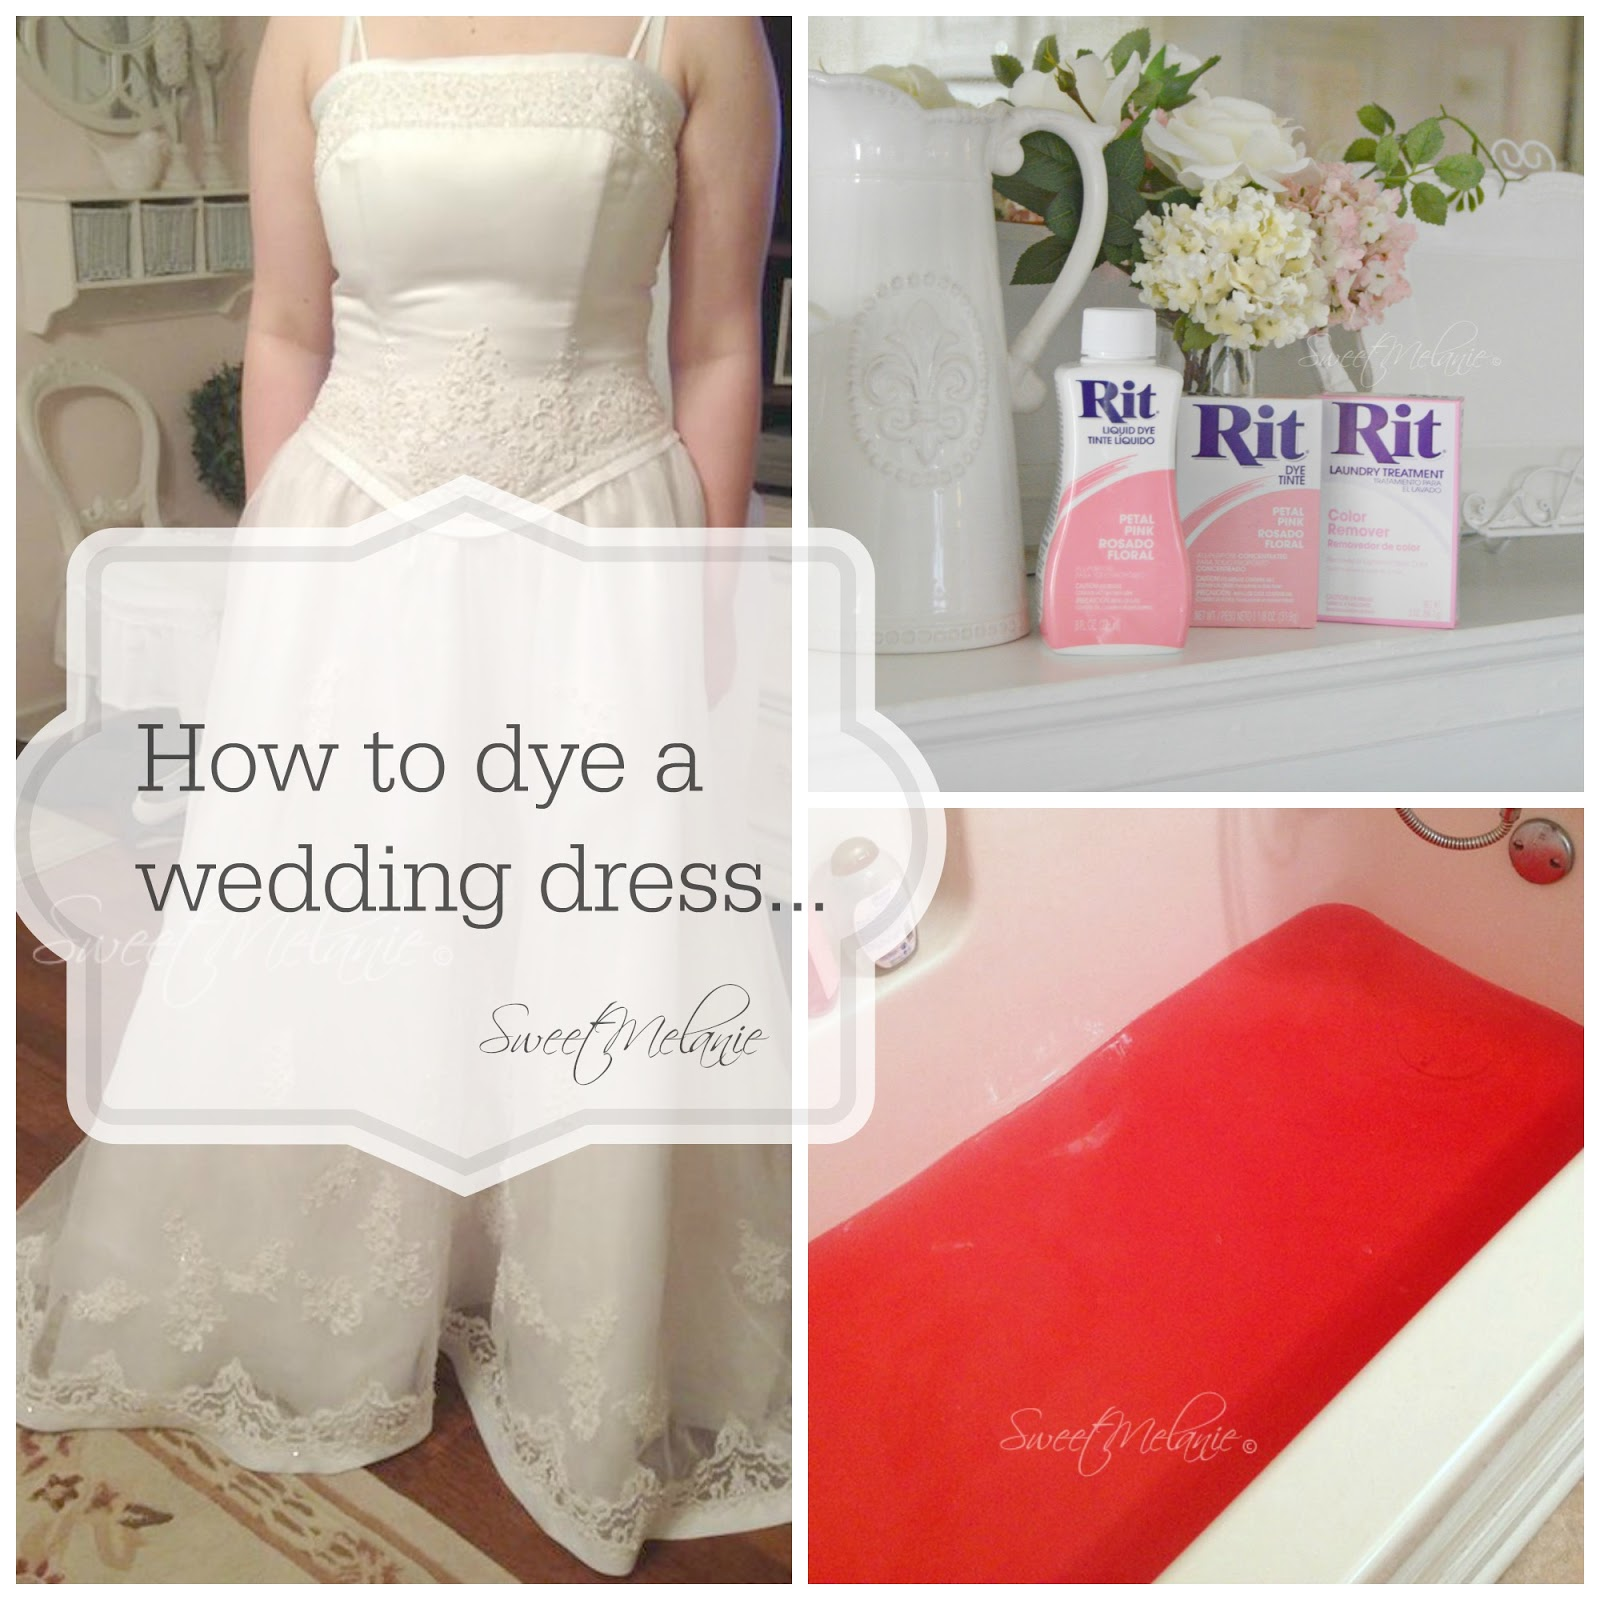 Sweet Melanie~: How to DYE a Wedding Dress